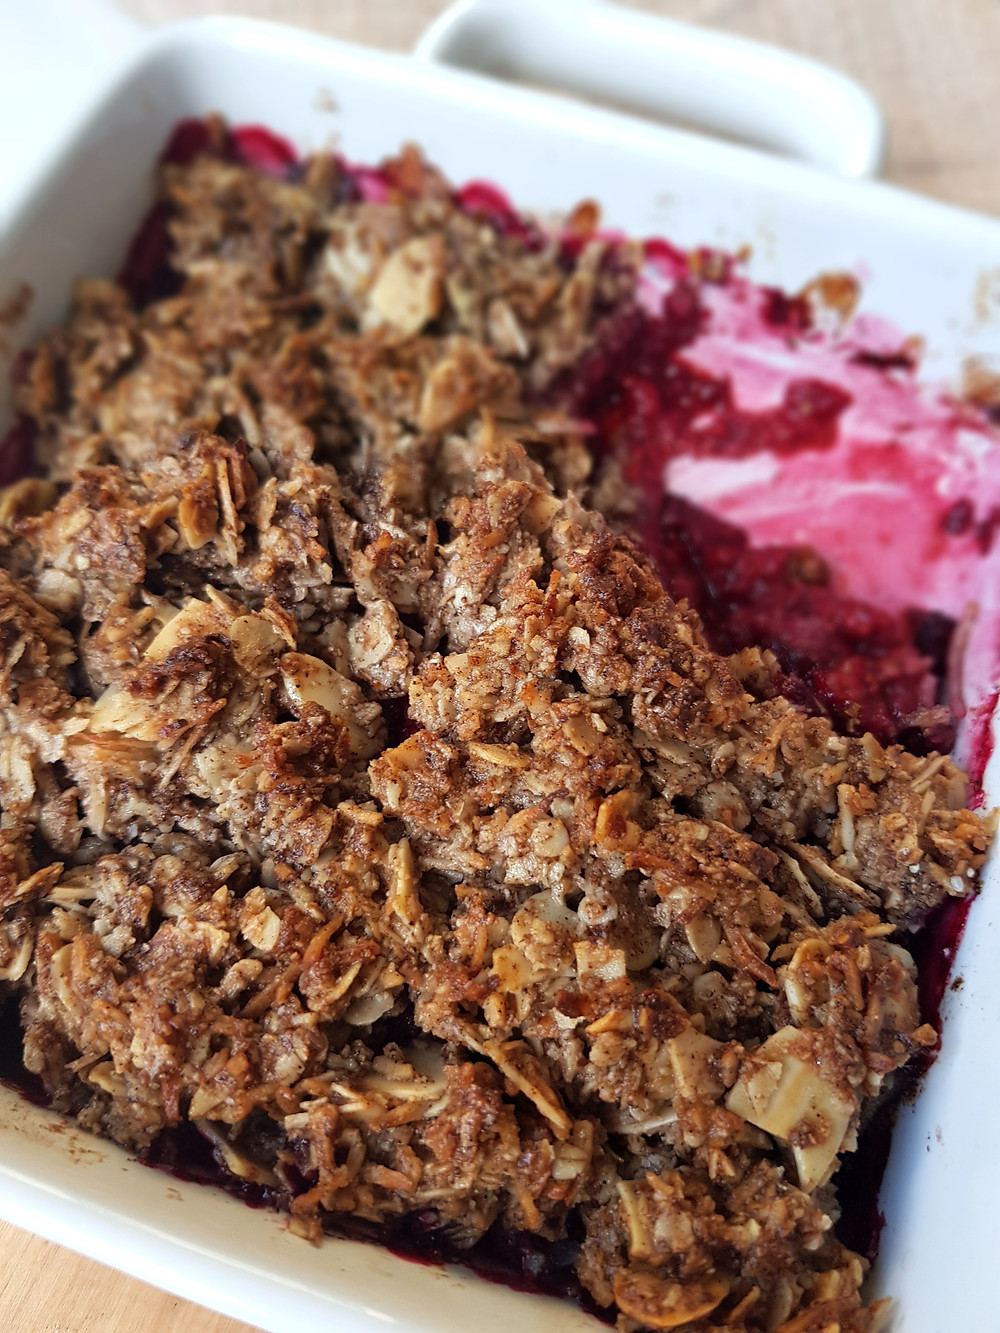 Baked raspberry crumble